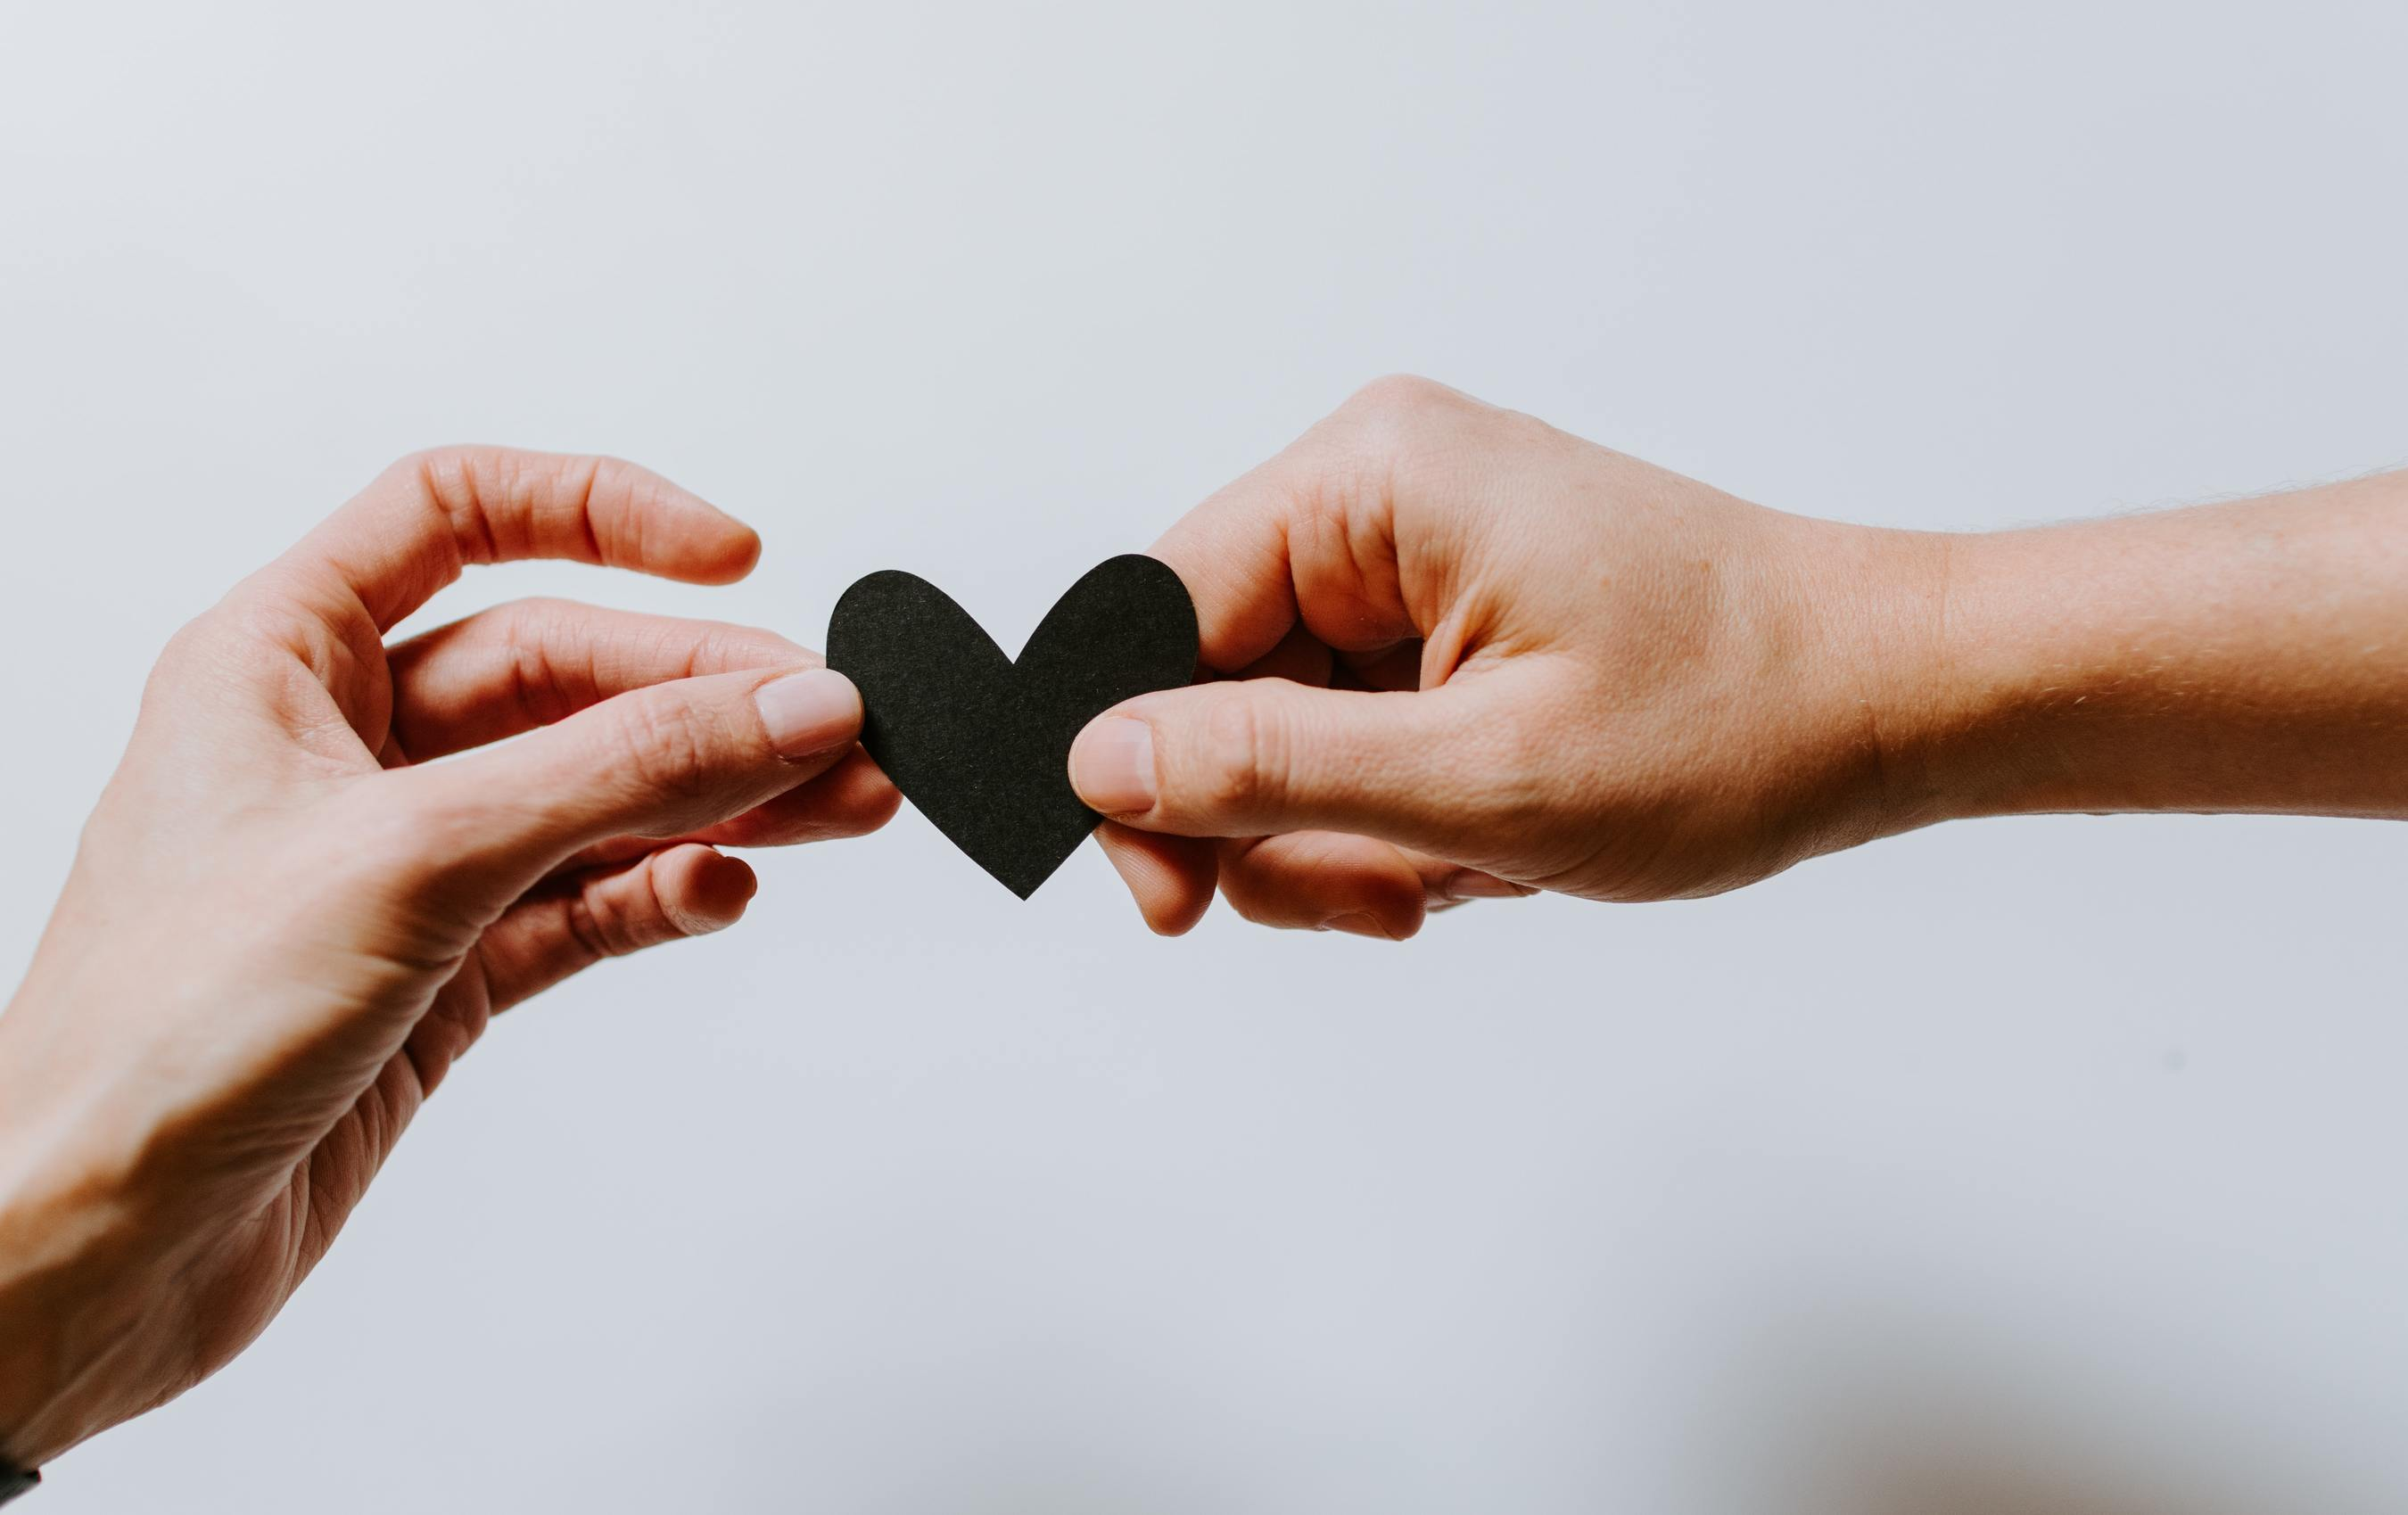 Two hands holding a heart paper together